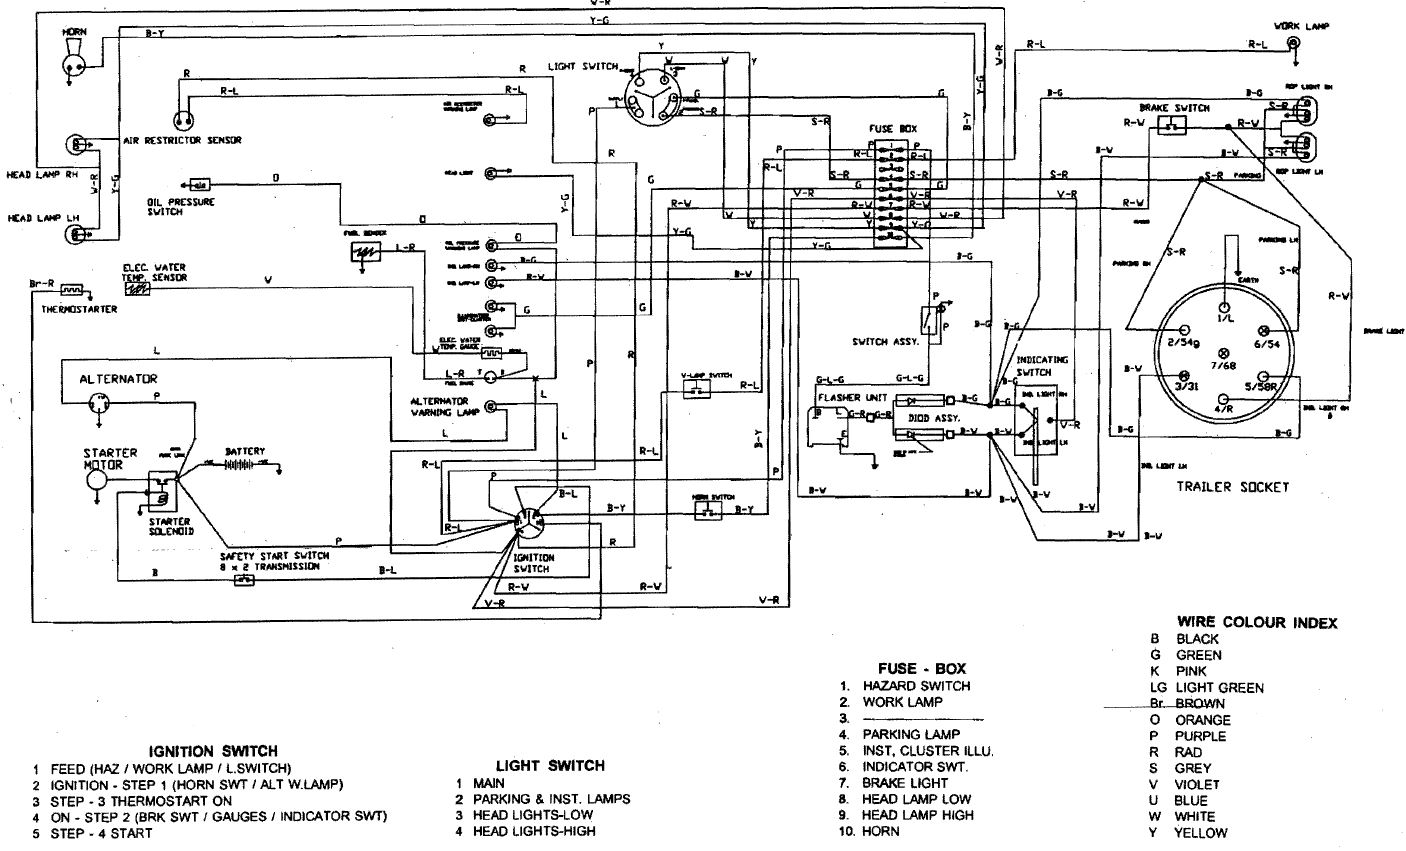 hight resolution of 1958 ford tractor wiring diagram wiring diagram1958 ford tractor wiring diagram schematic diagramignition switch wiring diagram